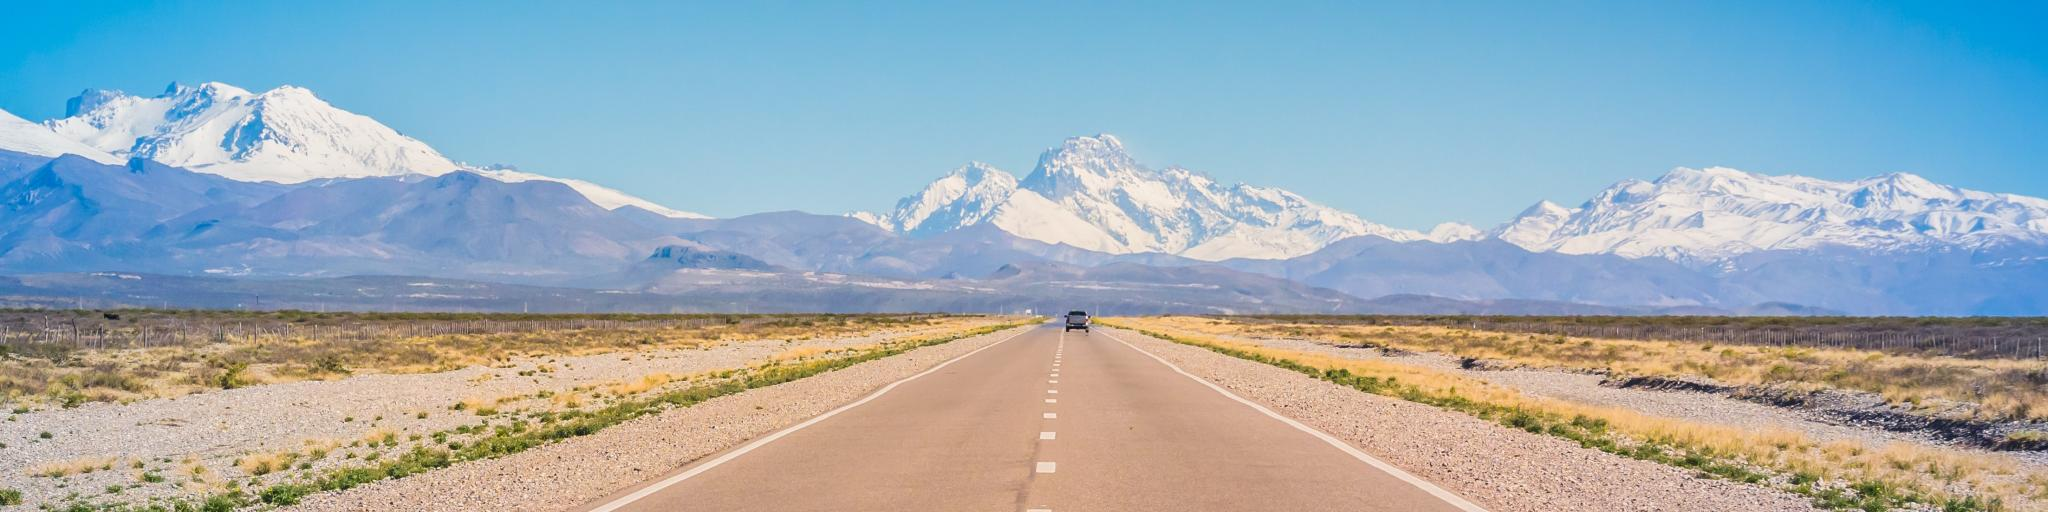 A car on an empty road in Mendoza, Argentina, with mountains in the background